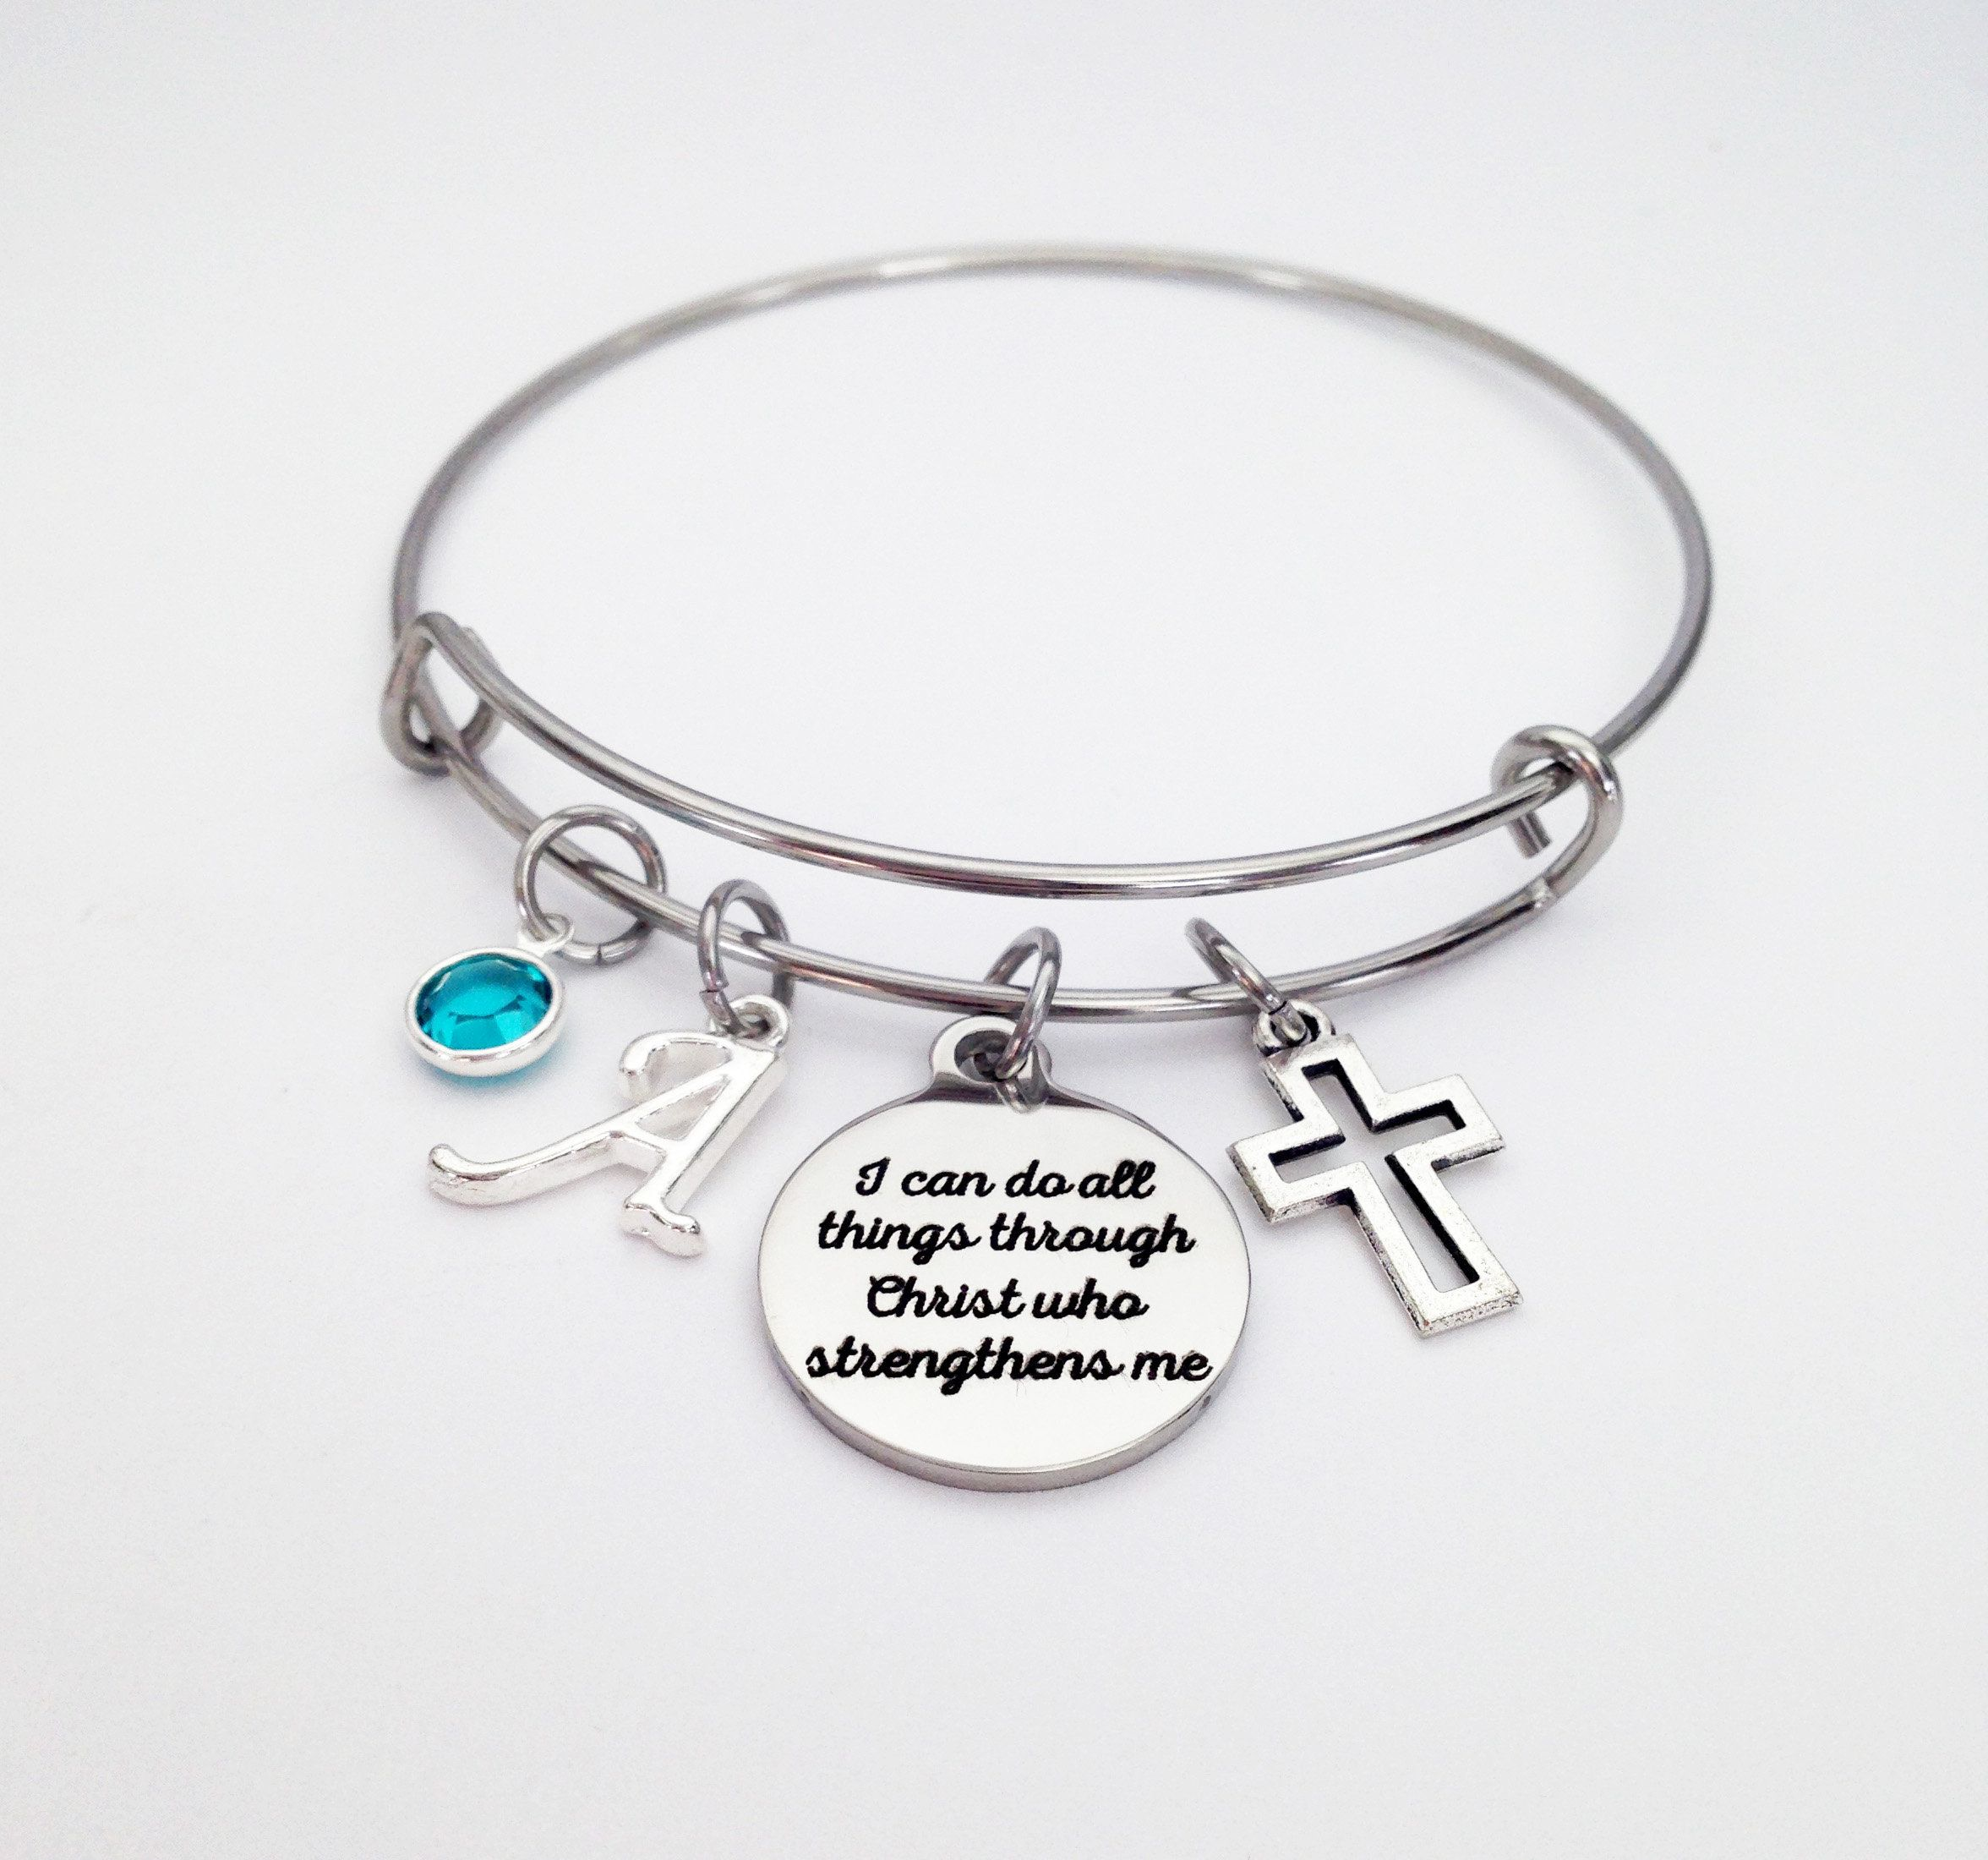 Easter gifts for adults faith bracelet christian gifts for women easter gifts for adults faith bracelet christian gifts for women faith gifts negle Choice Image